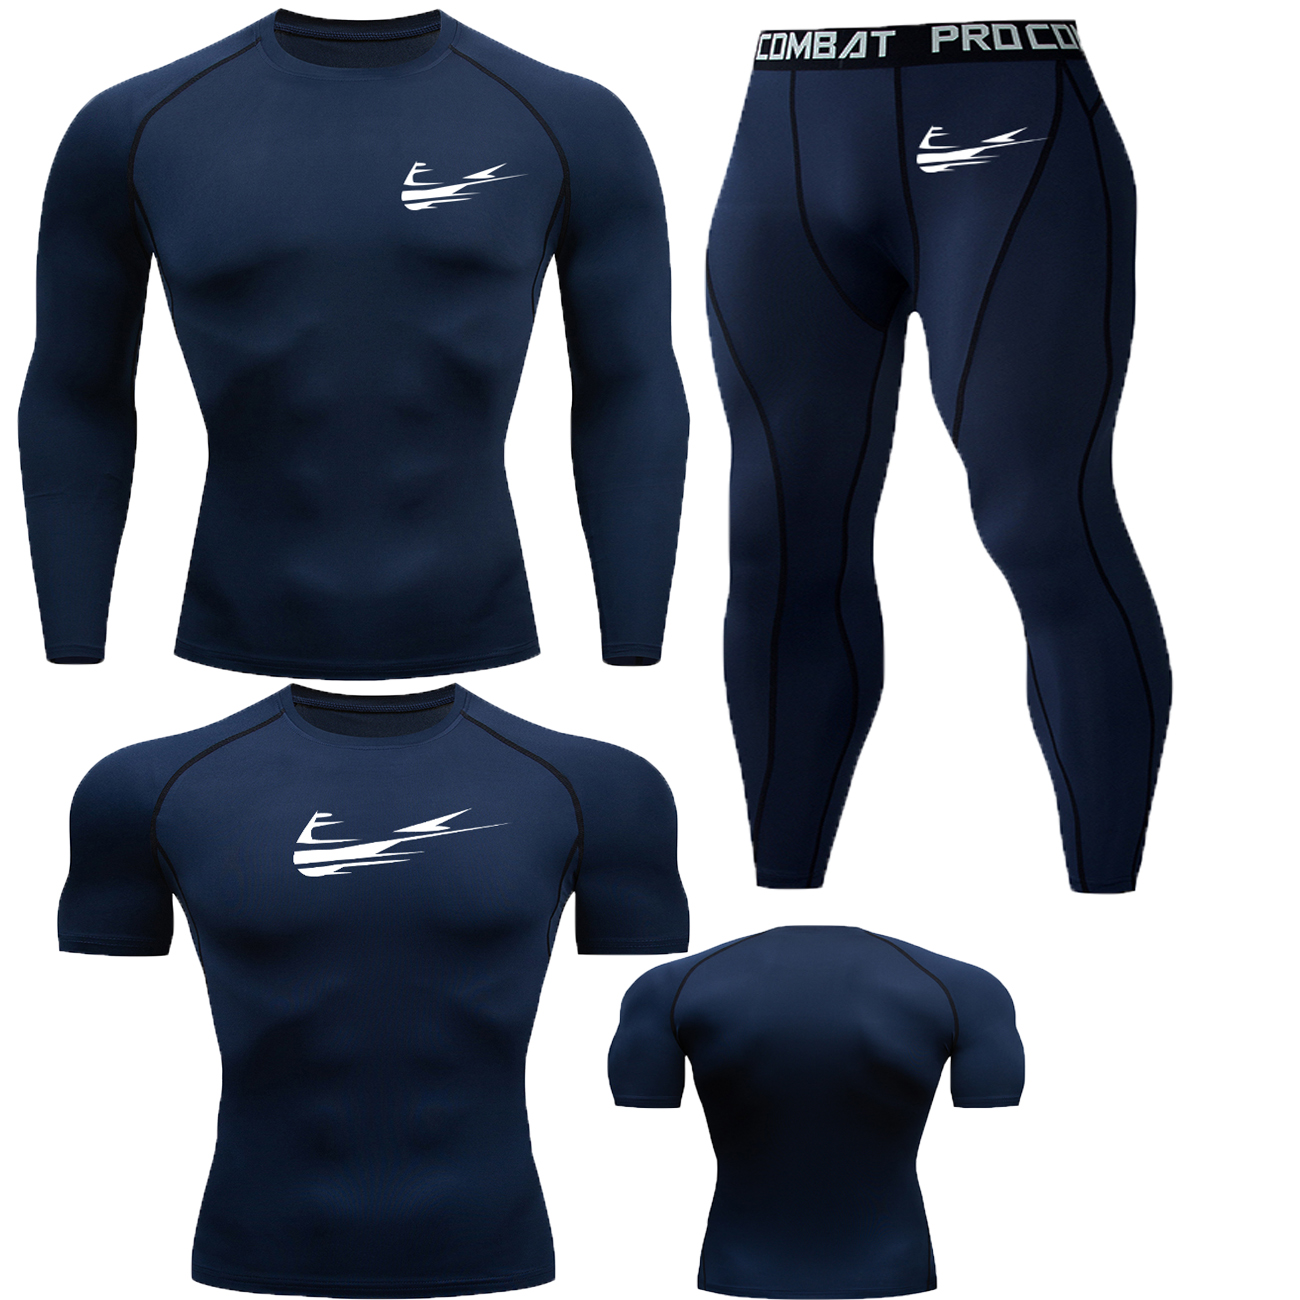 De Compression Homme Top T And Get Shirt Shipping 10 Free Brands 0vmNPny8wO